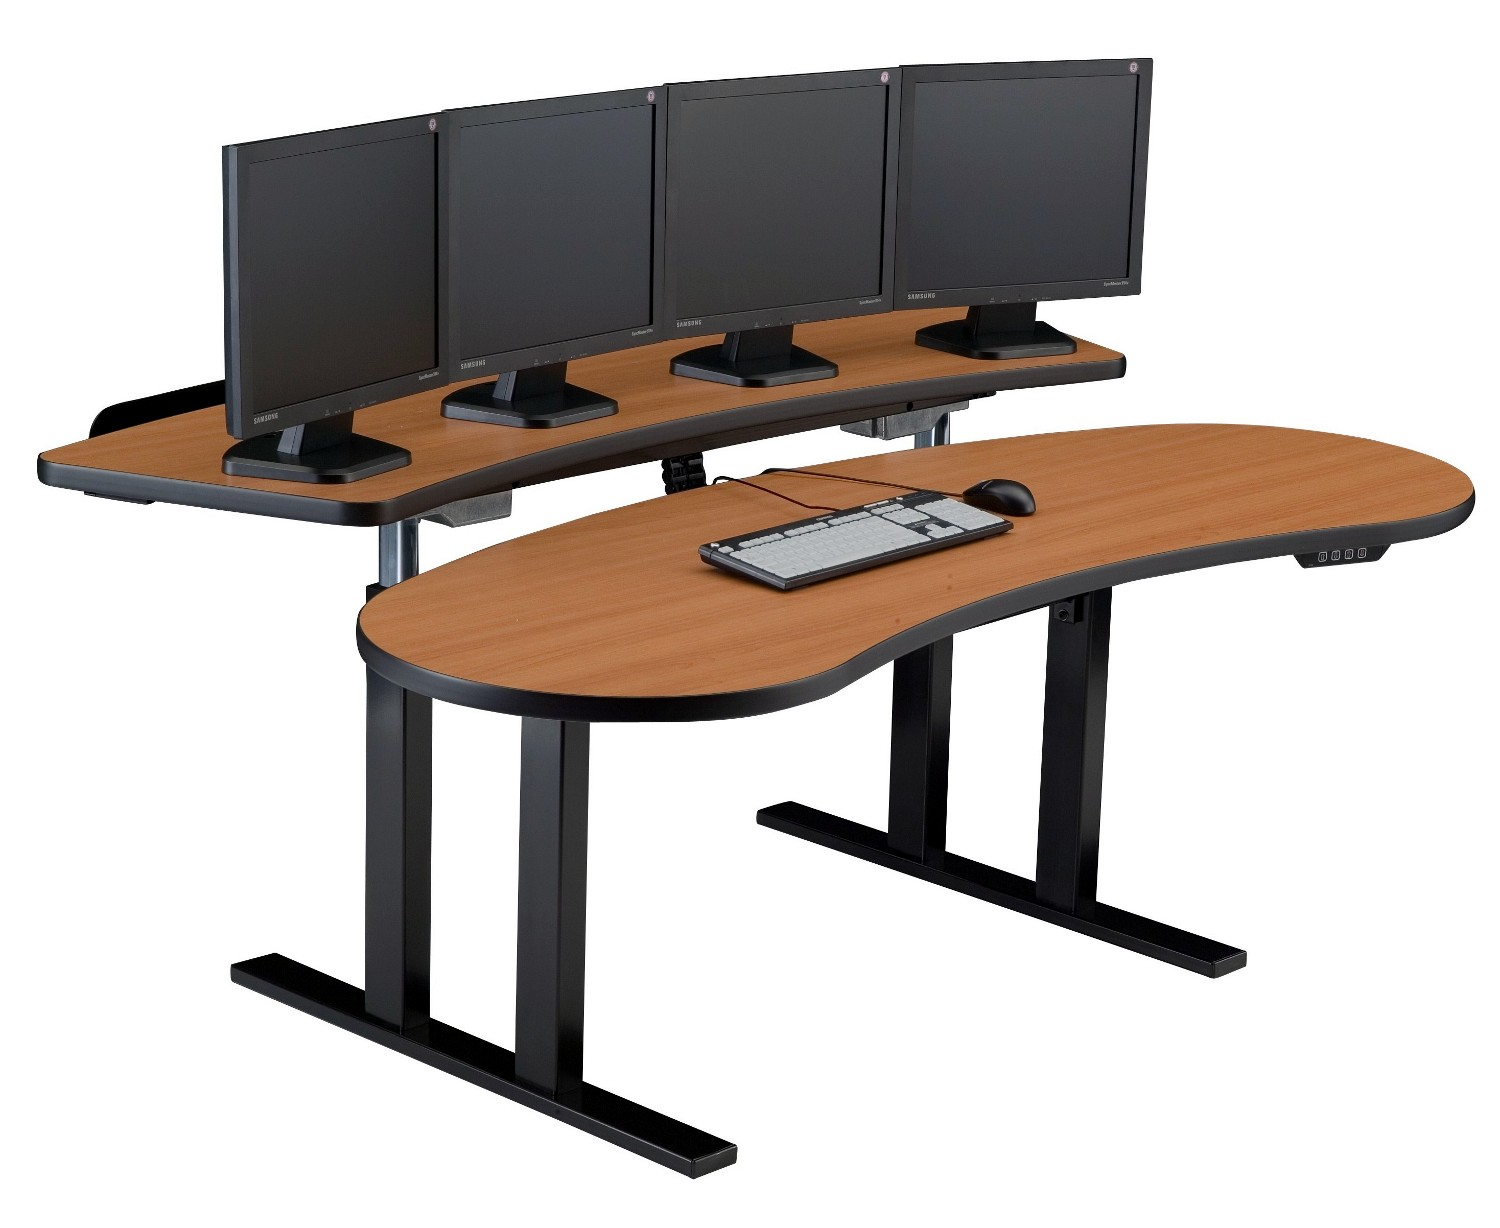 https://sep.yimg.com/ay/eca/adjustable-computer-desk-ergonomic-desk-37.jpg